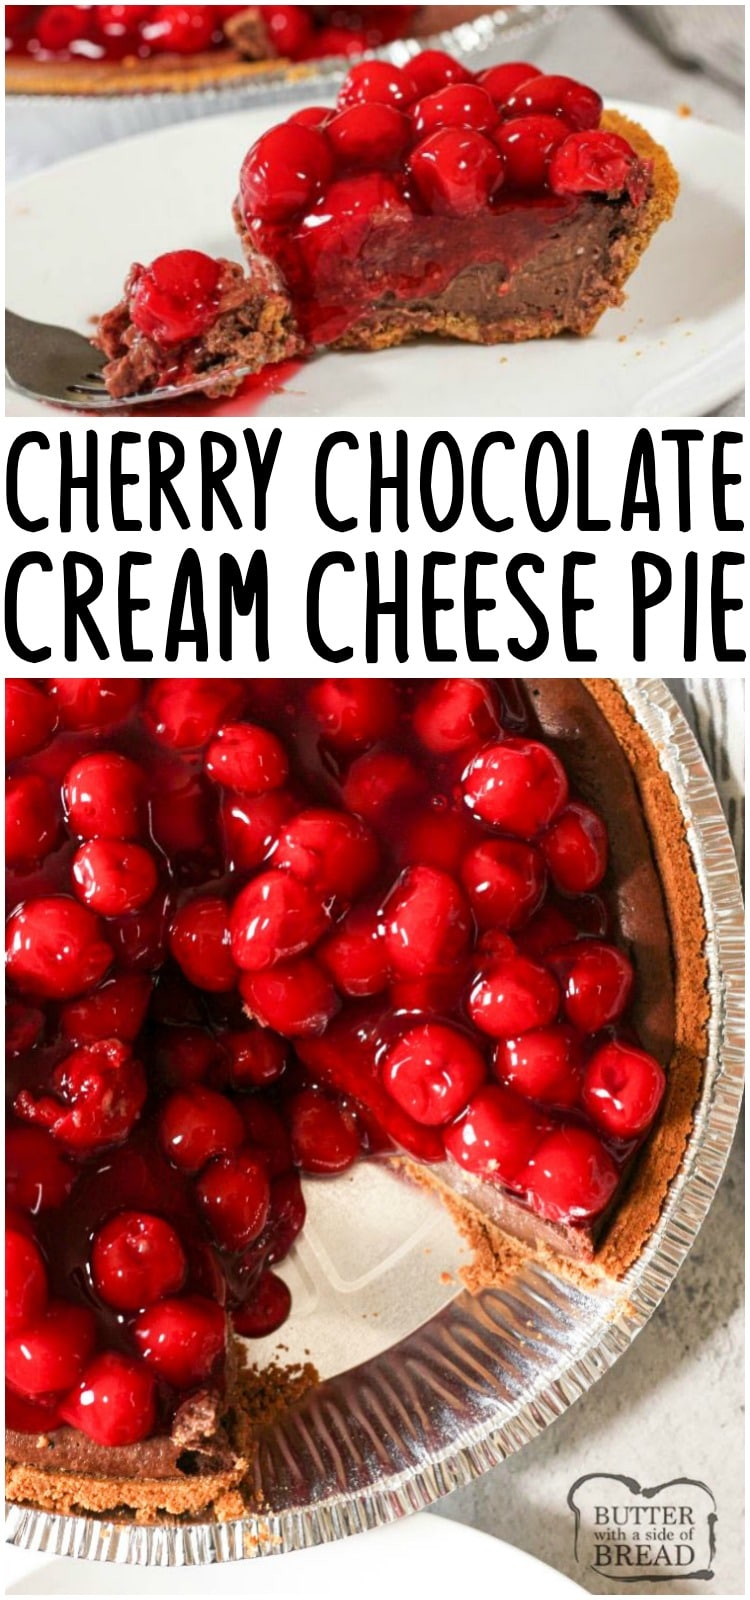 Chocolate Cream Cheese Pie is a simple pie made with cream cheese, cocoa, eggs, cream, vanilla and sugar all baked in a delicious graham cracker crust. This simple cream cheese pie recipe is rich and creamy like a perfect slice of cheesecake.